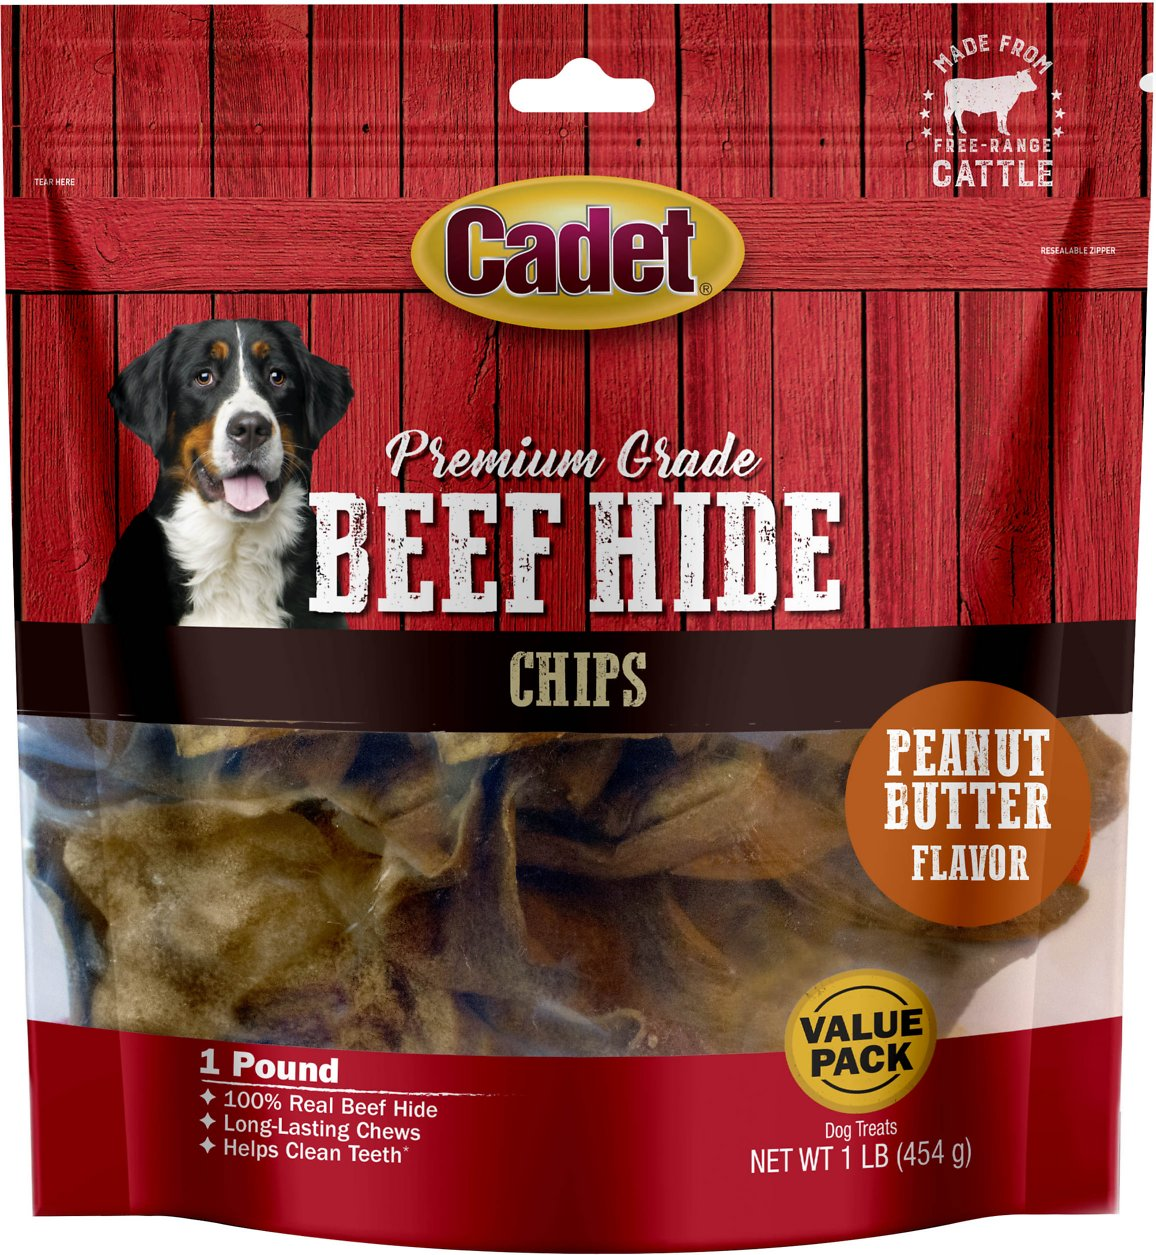 Cadet Gourmet Premium Grade Rawhide Chews for Dogs